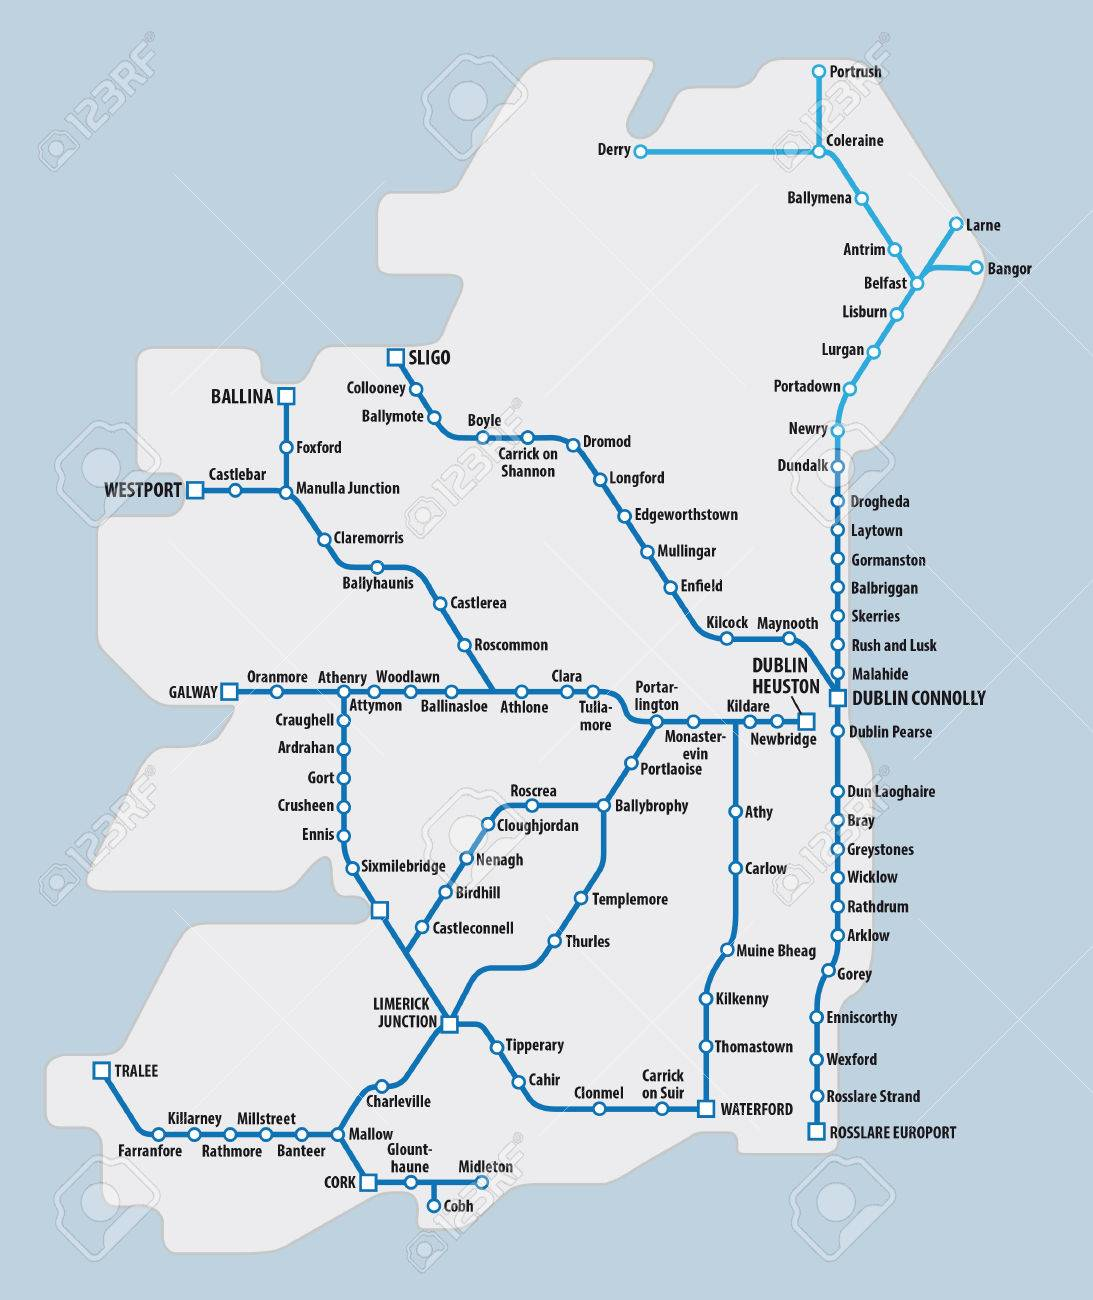 Map Of Ireland With Schematic Railway Route Network Royalty Free